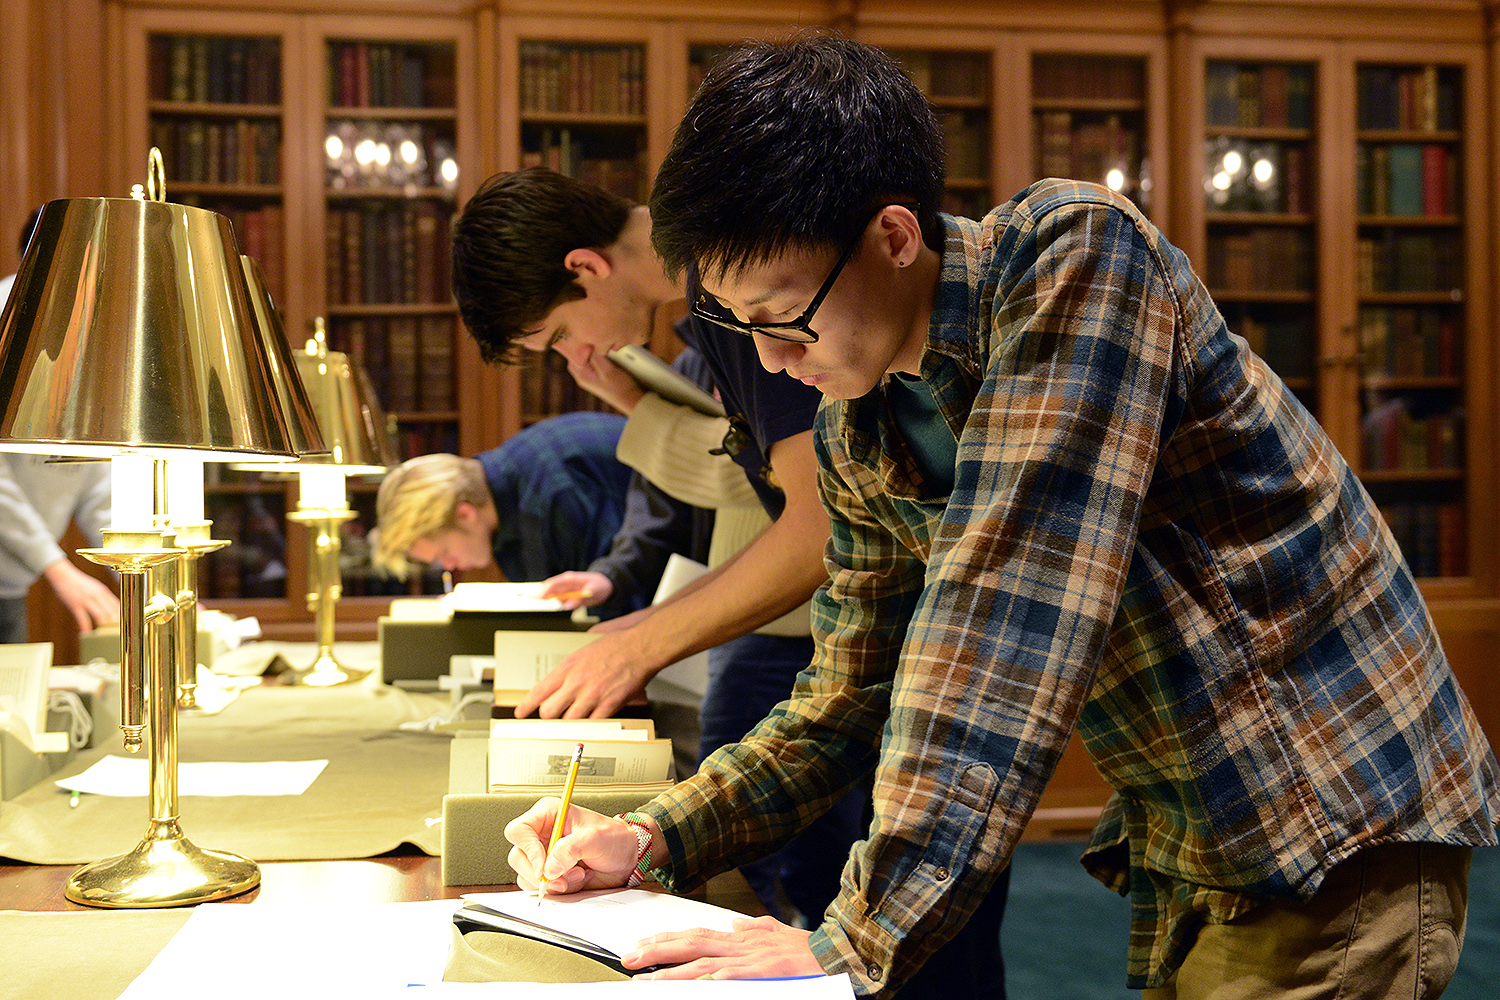 On Nov. 10, the Social and Political Changes in Korea class met at Wesleyan's Special Collections & Archives to examine archival materials on missionaries to Korea (and East Asia).